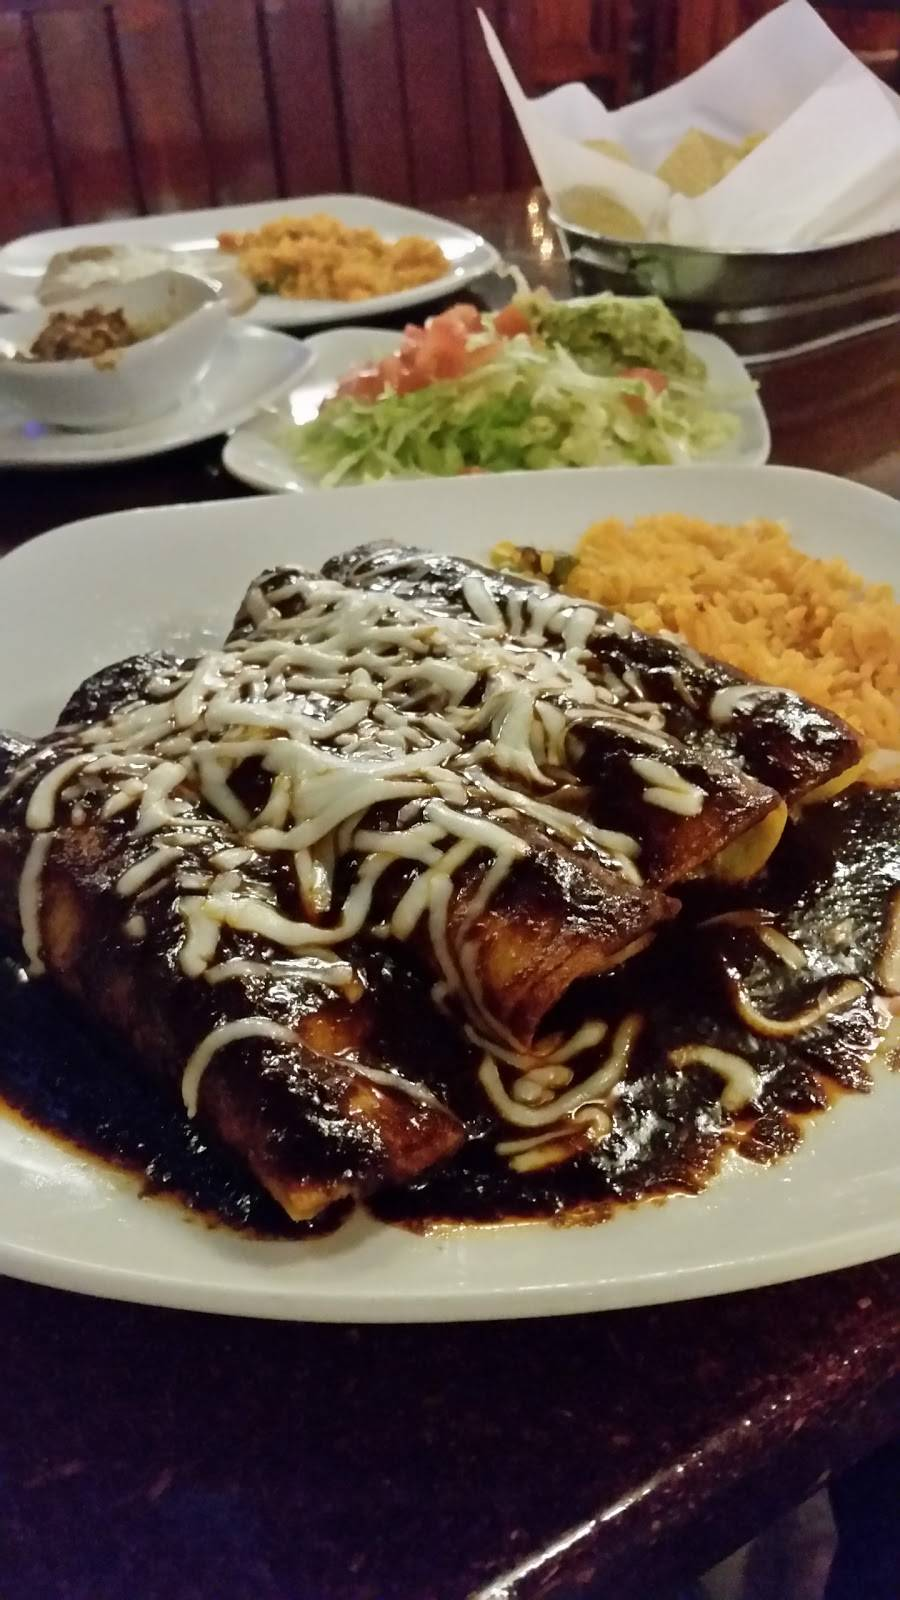 Cucos   restaurant   350 N Century Ave, Waunakee, WI 53597, USA   6088506180 OR +1 608-850-6180